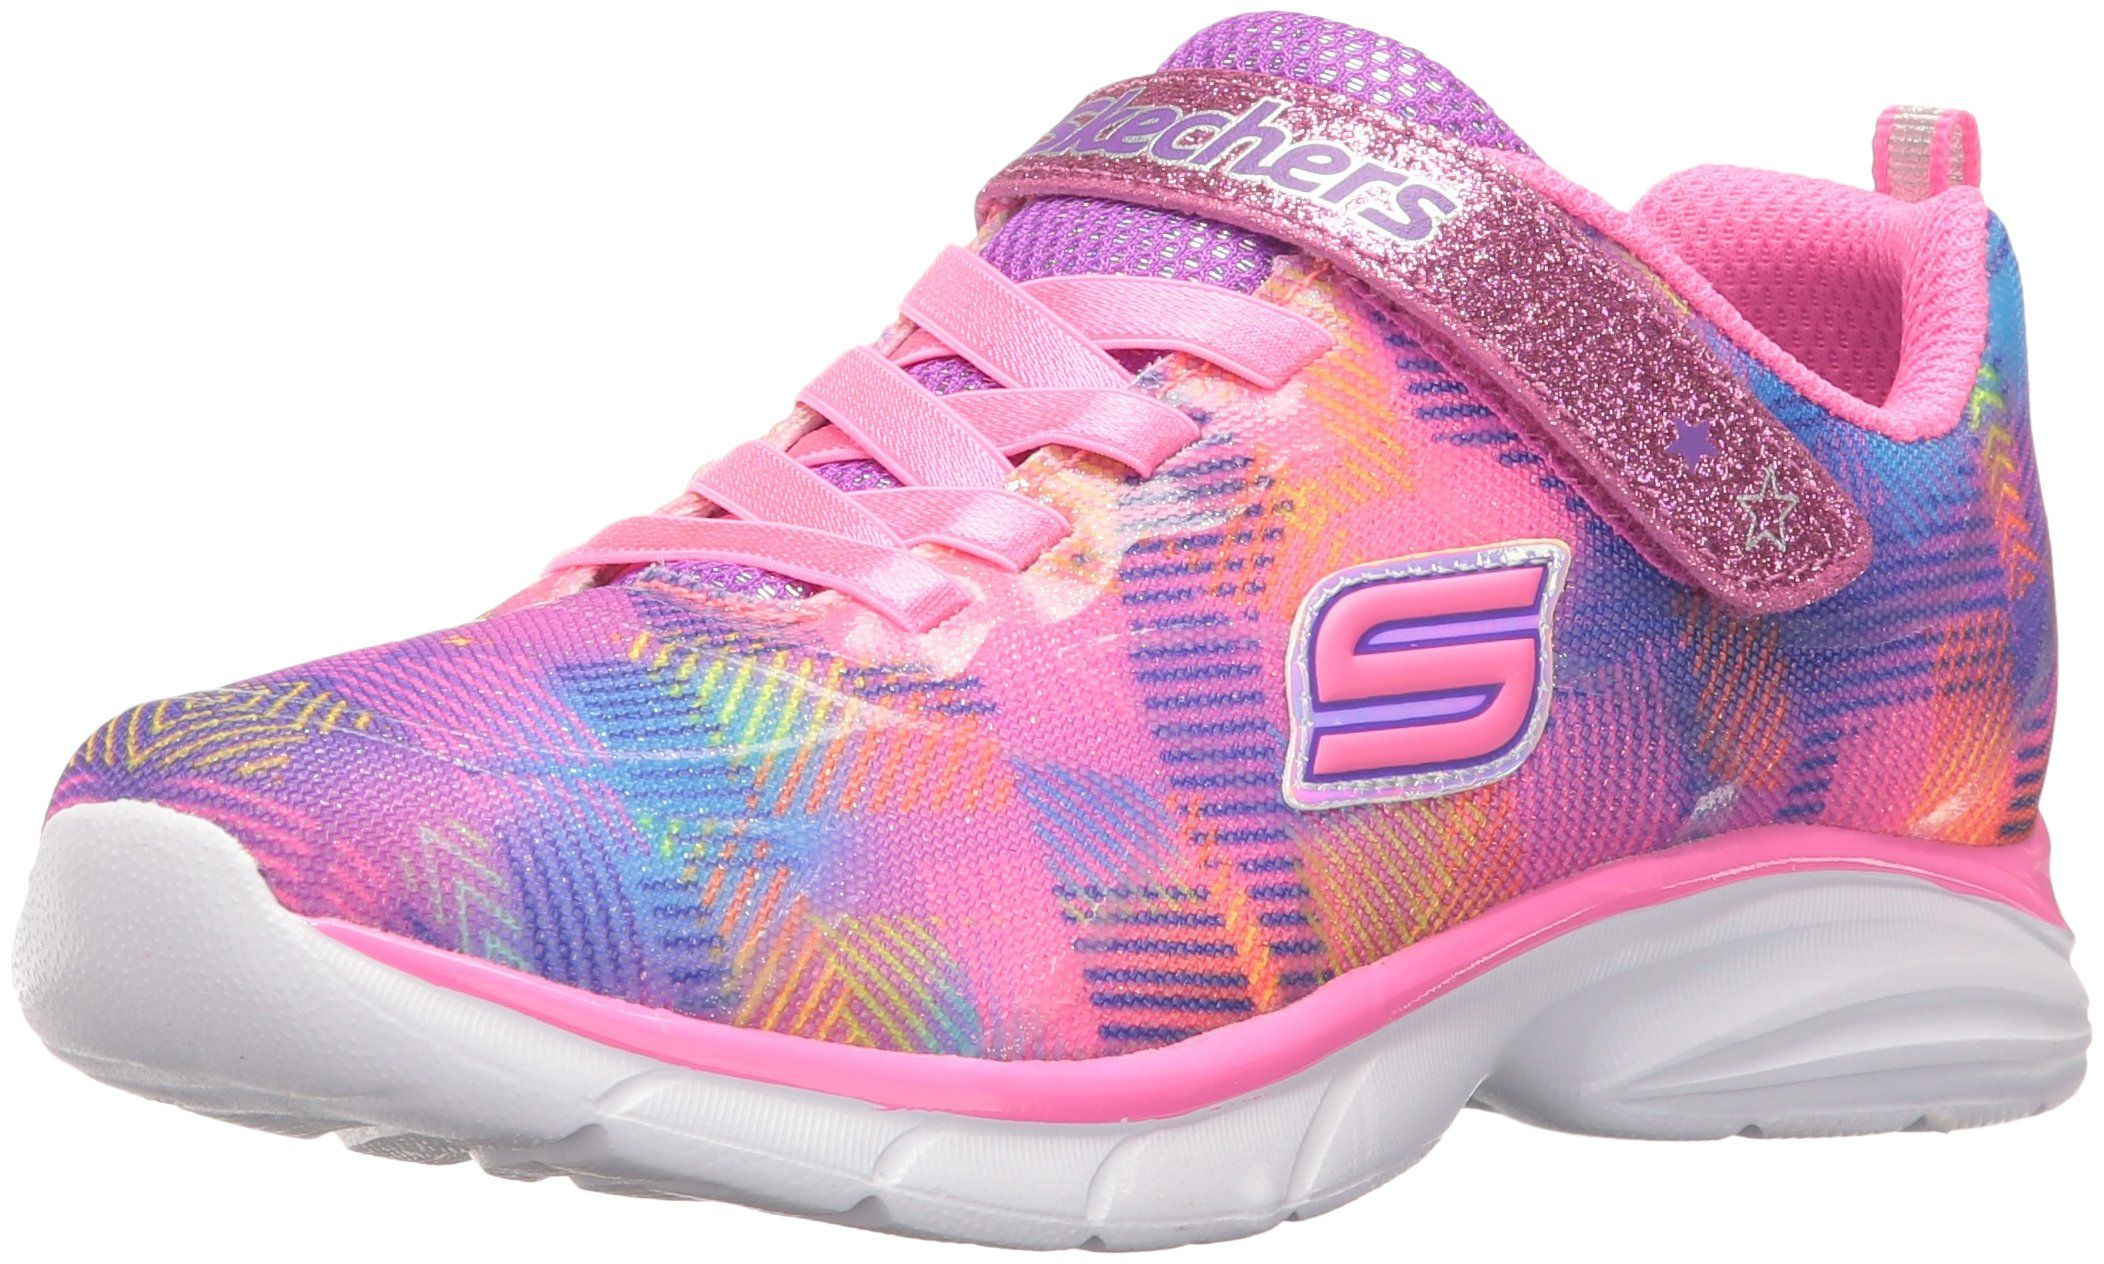 Skechers Kids Girls' Spirit Sprintz Sneaker, Neon Pink/Multi, 4 M US Big Kid